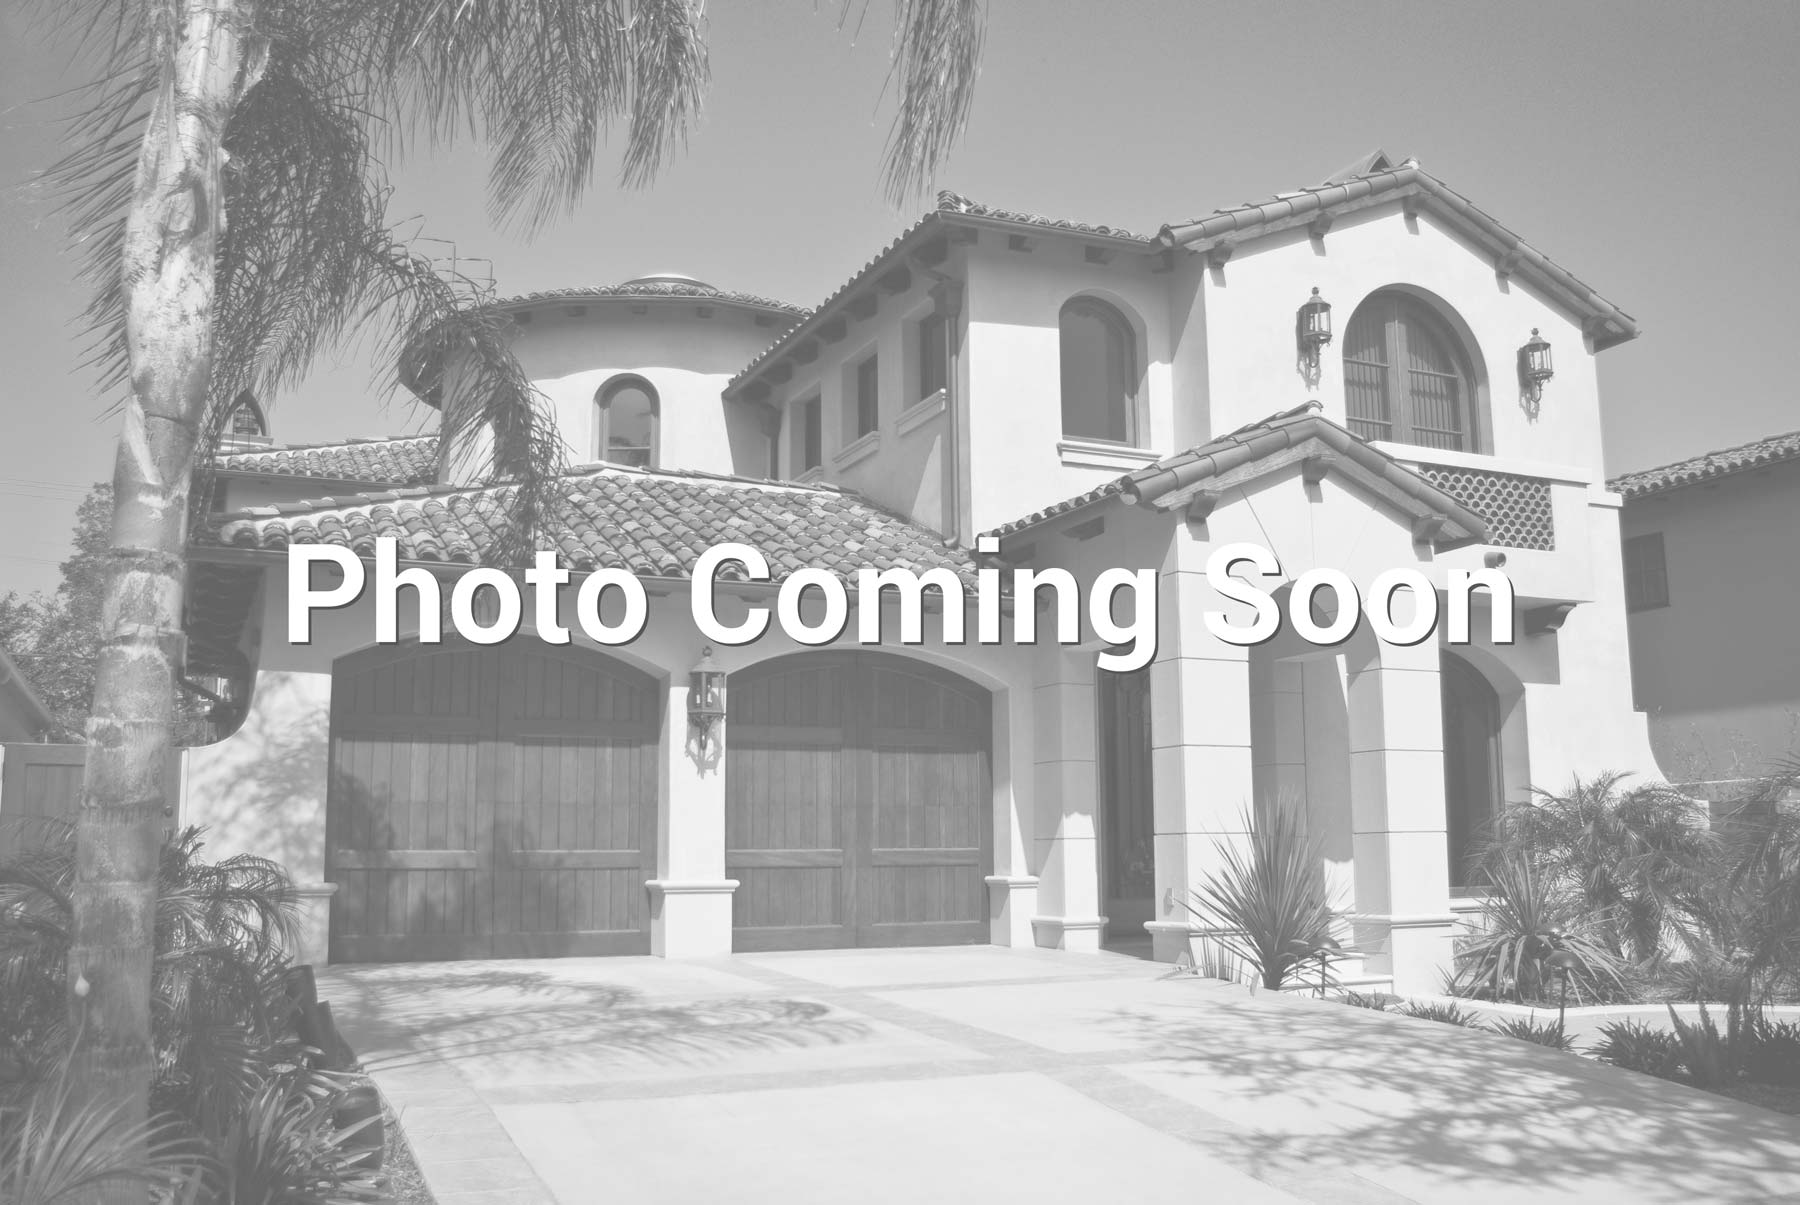 $799,000 - 5Br/3Ba -  for Sale in Imperial Beach, Imperial Beach